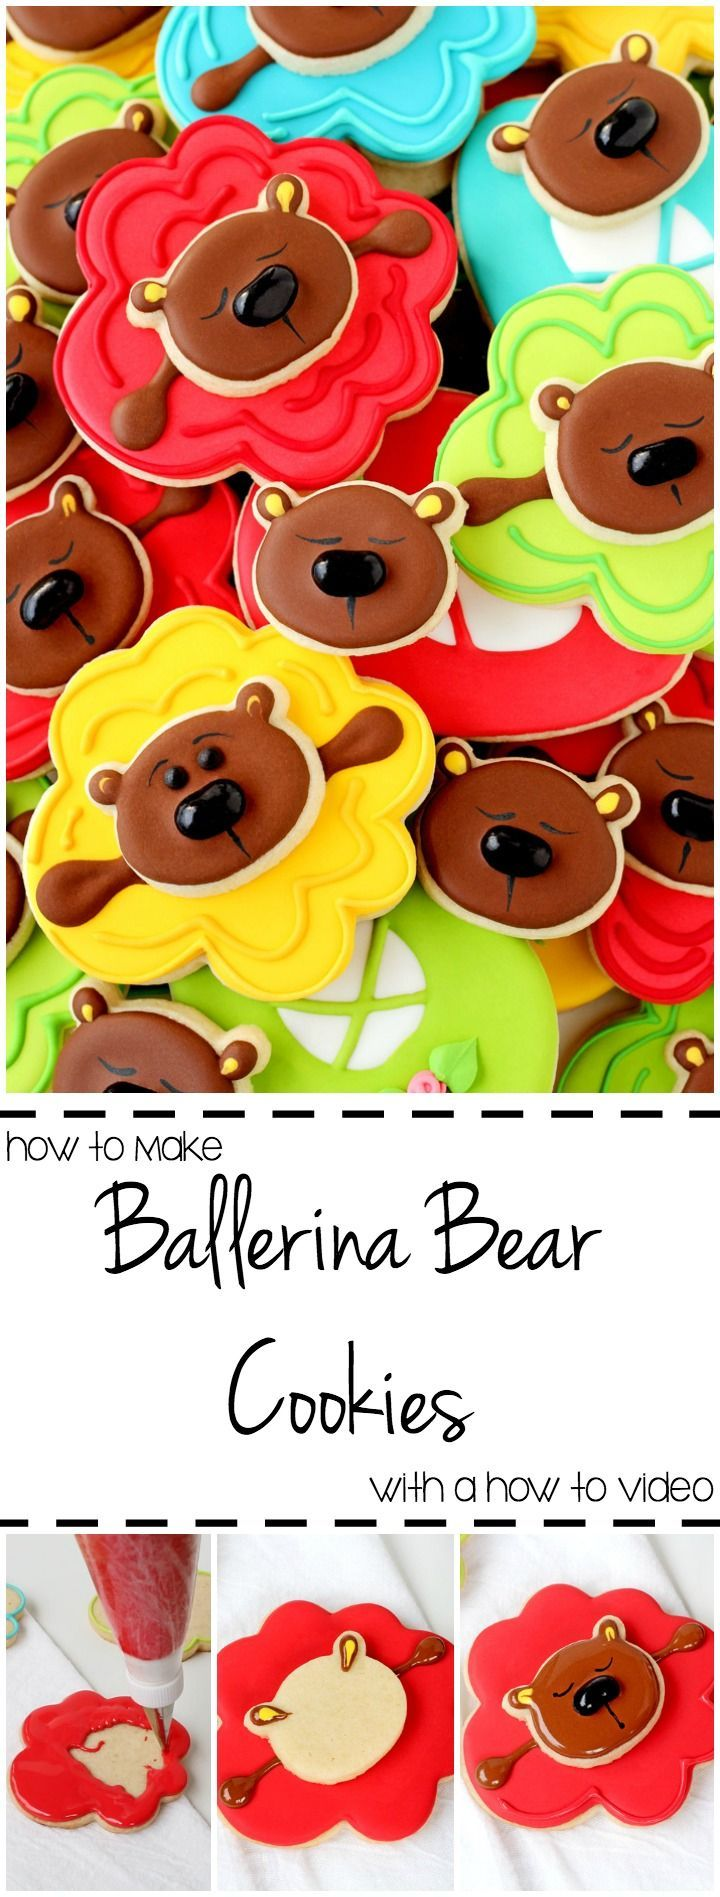 How to Make Adorable Ballerina Bear Cookies with a How to Video | The Bearfoot Baker